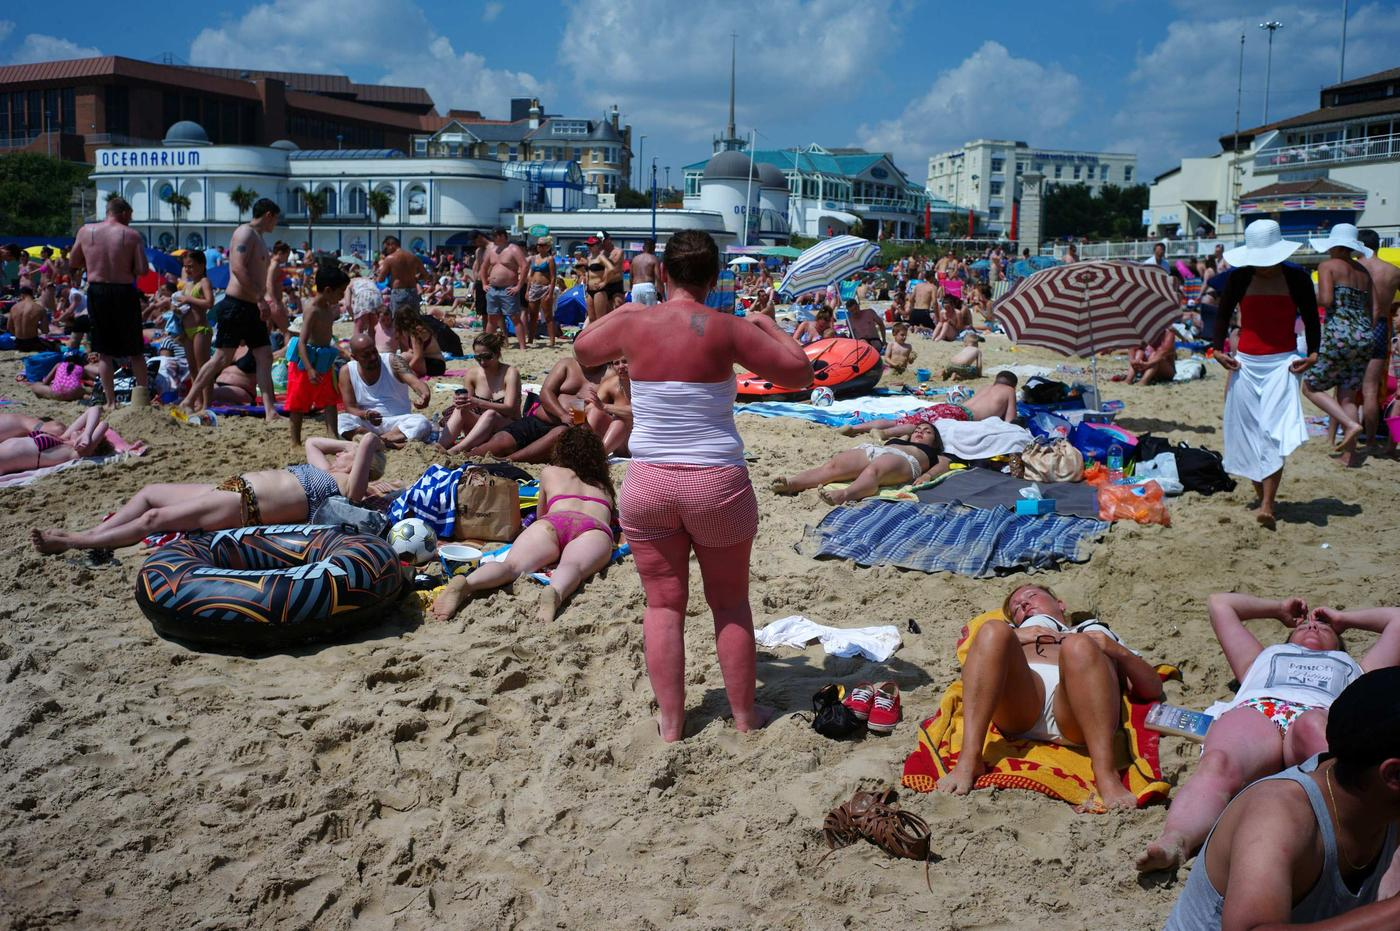 20 reasons summer and the British don't mix